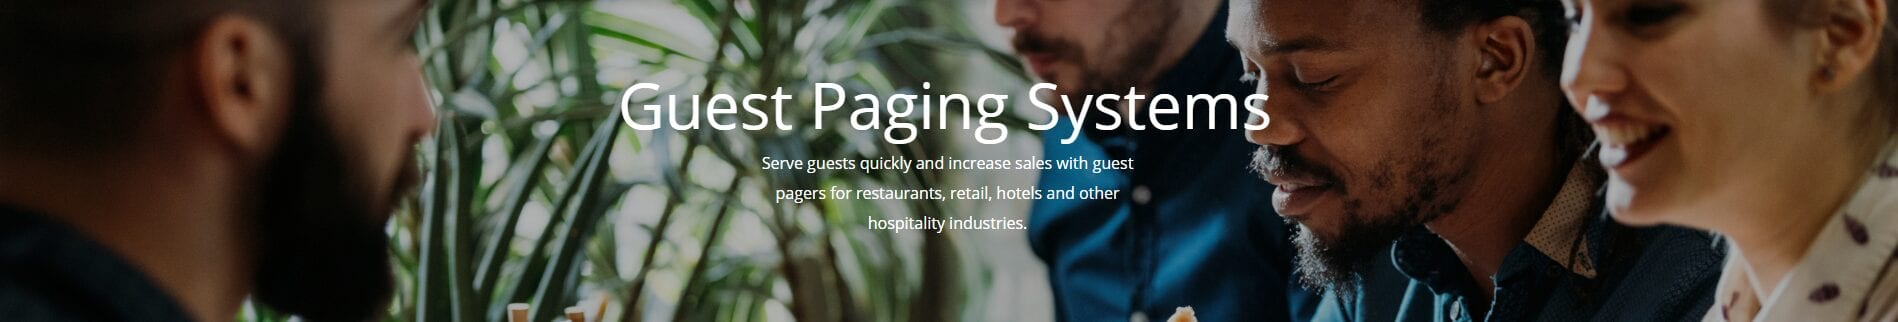 Page your guests and increase sales